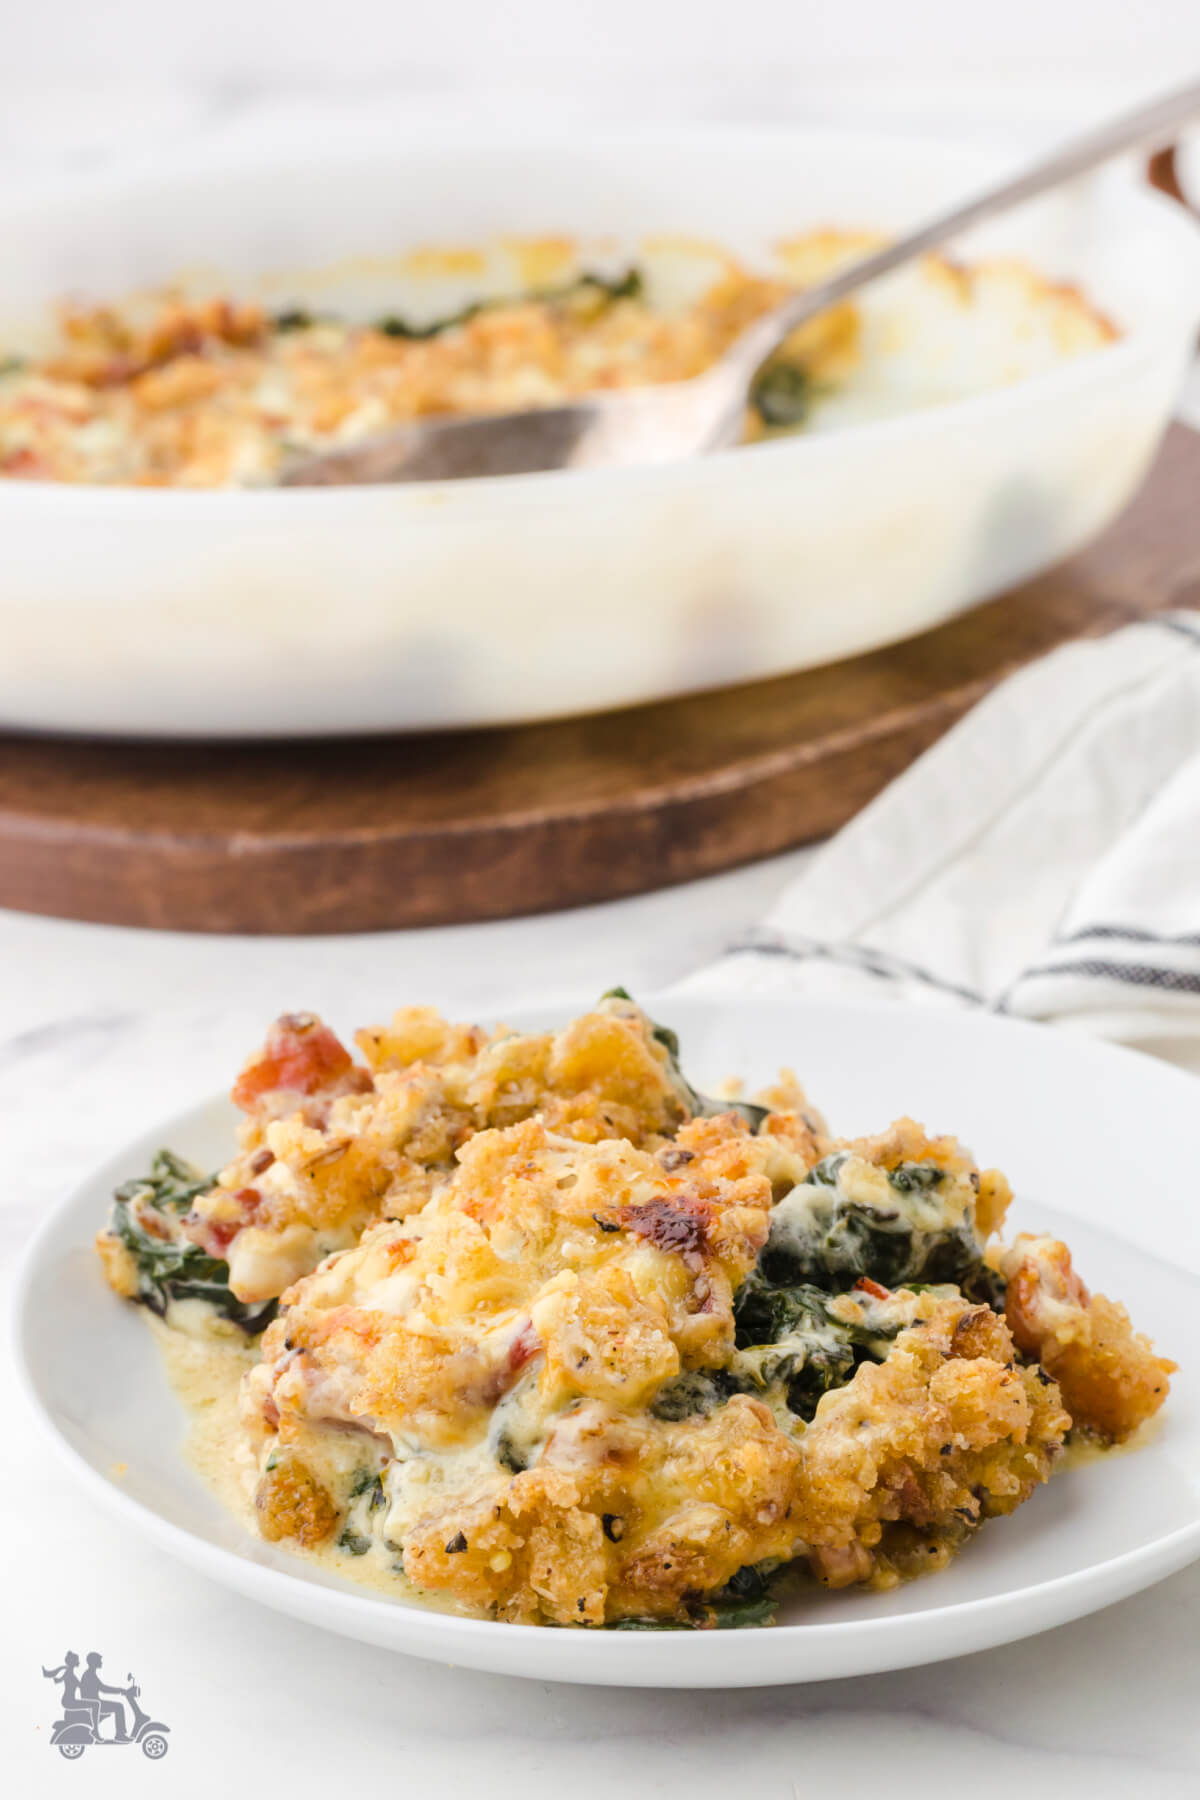 Serving of winter greens gratin as a vegetable side for the holidays.